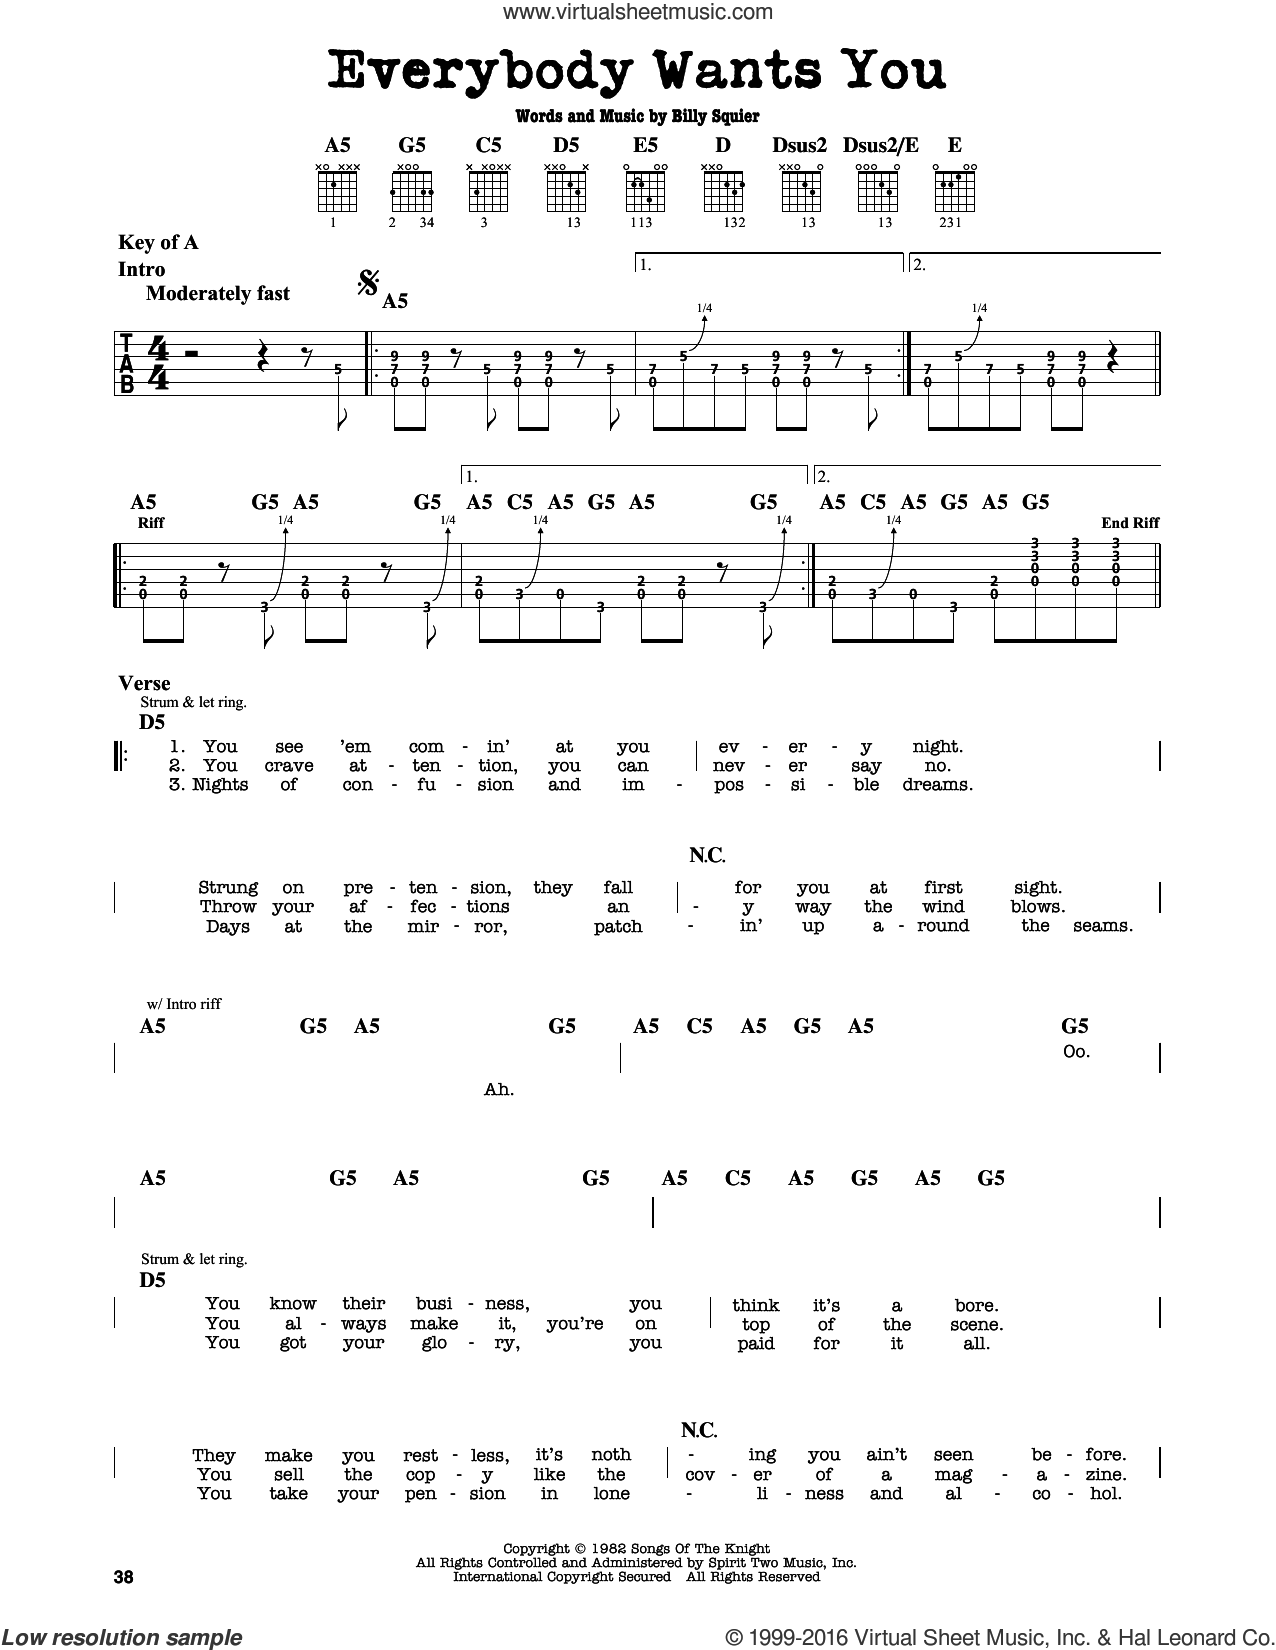 Everybody Wants You sheet music for guitar solo (lead sheet) by Billy Squier. Score Image Preview.